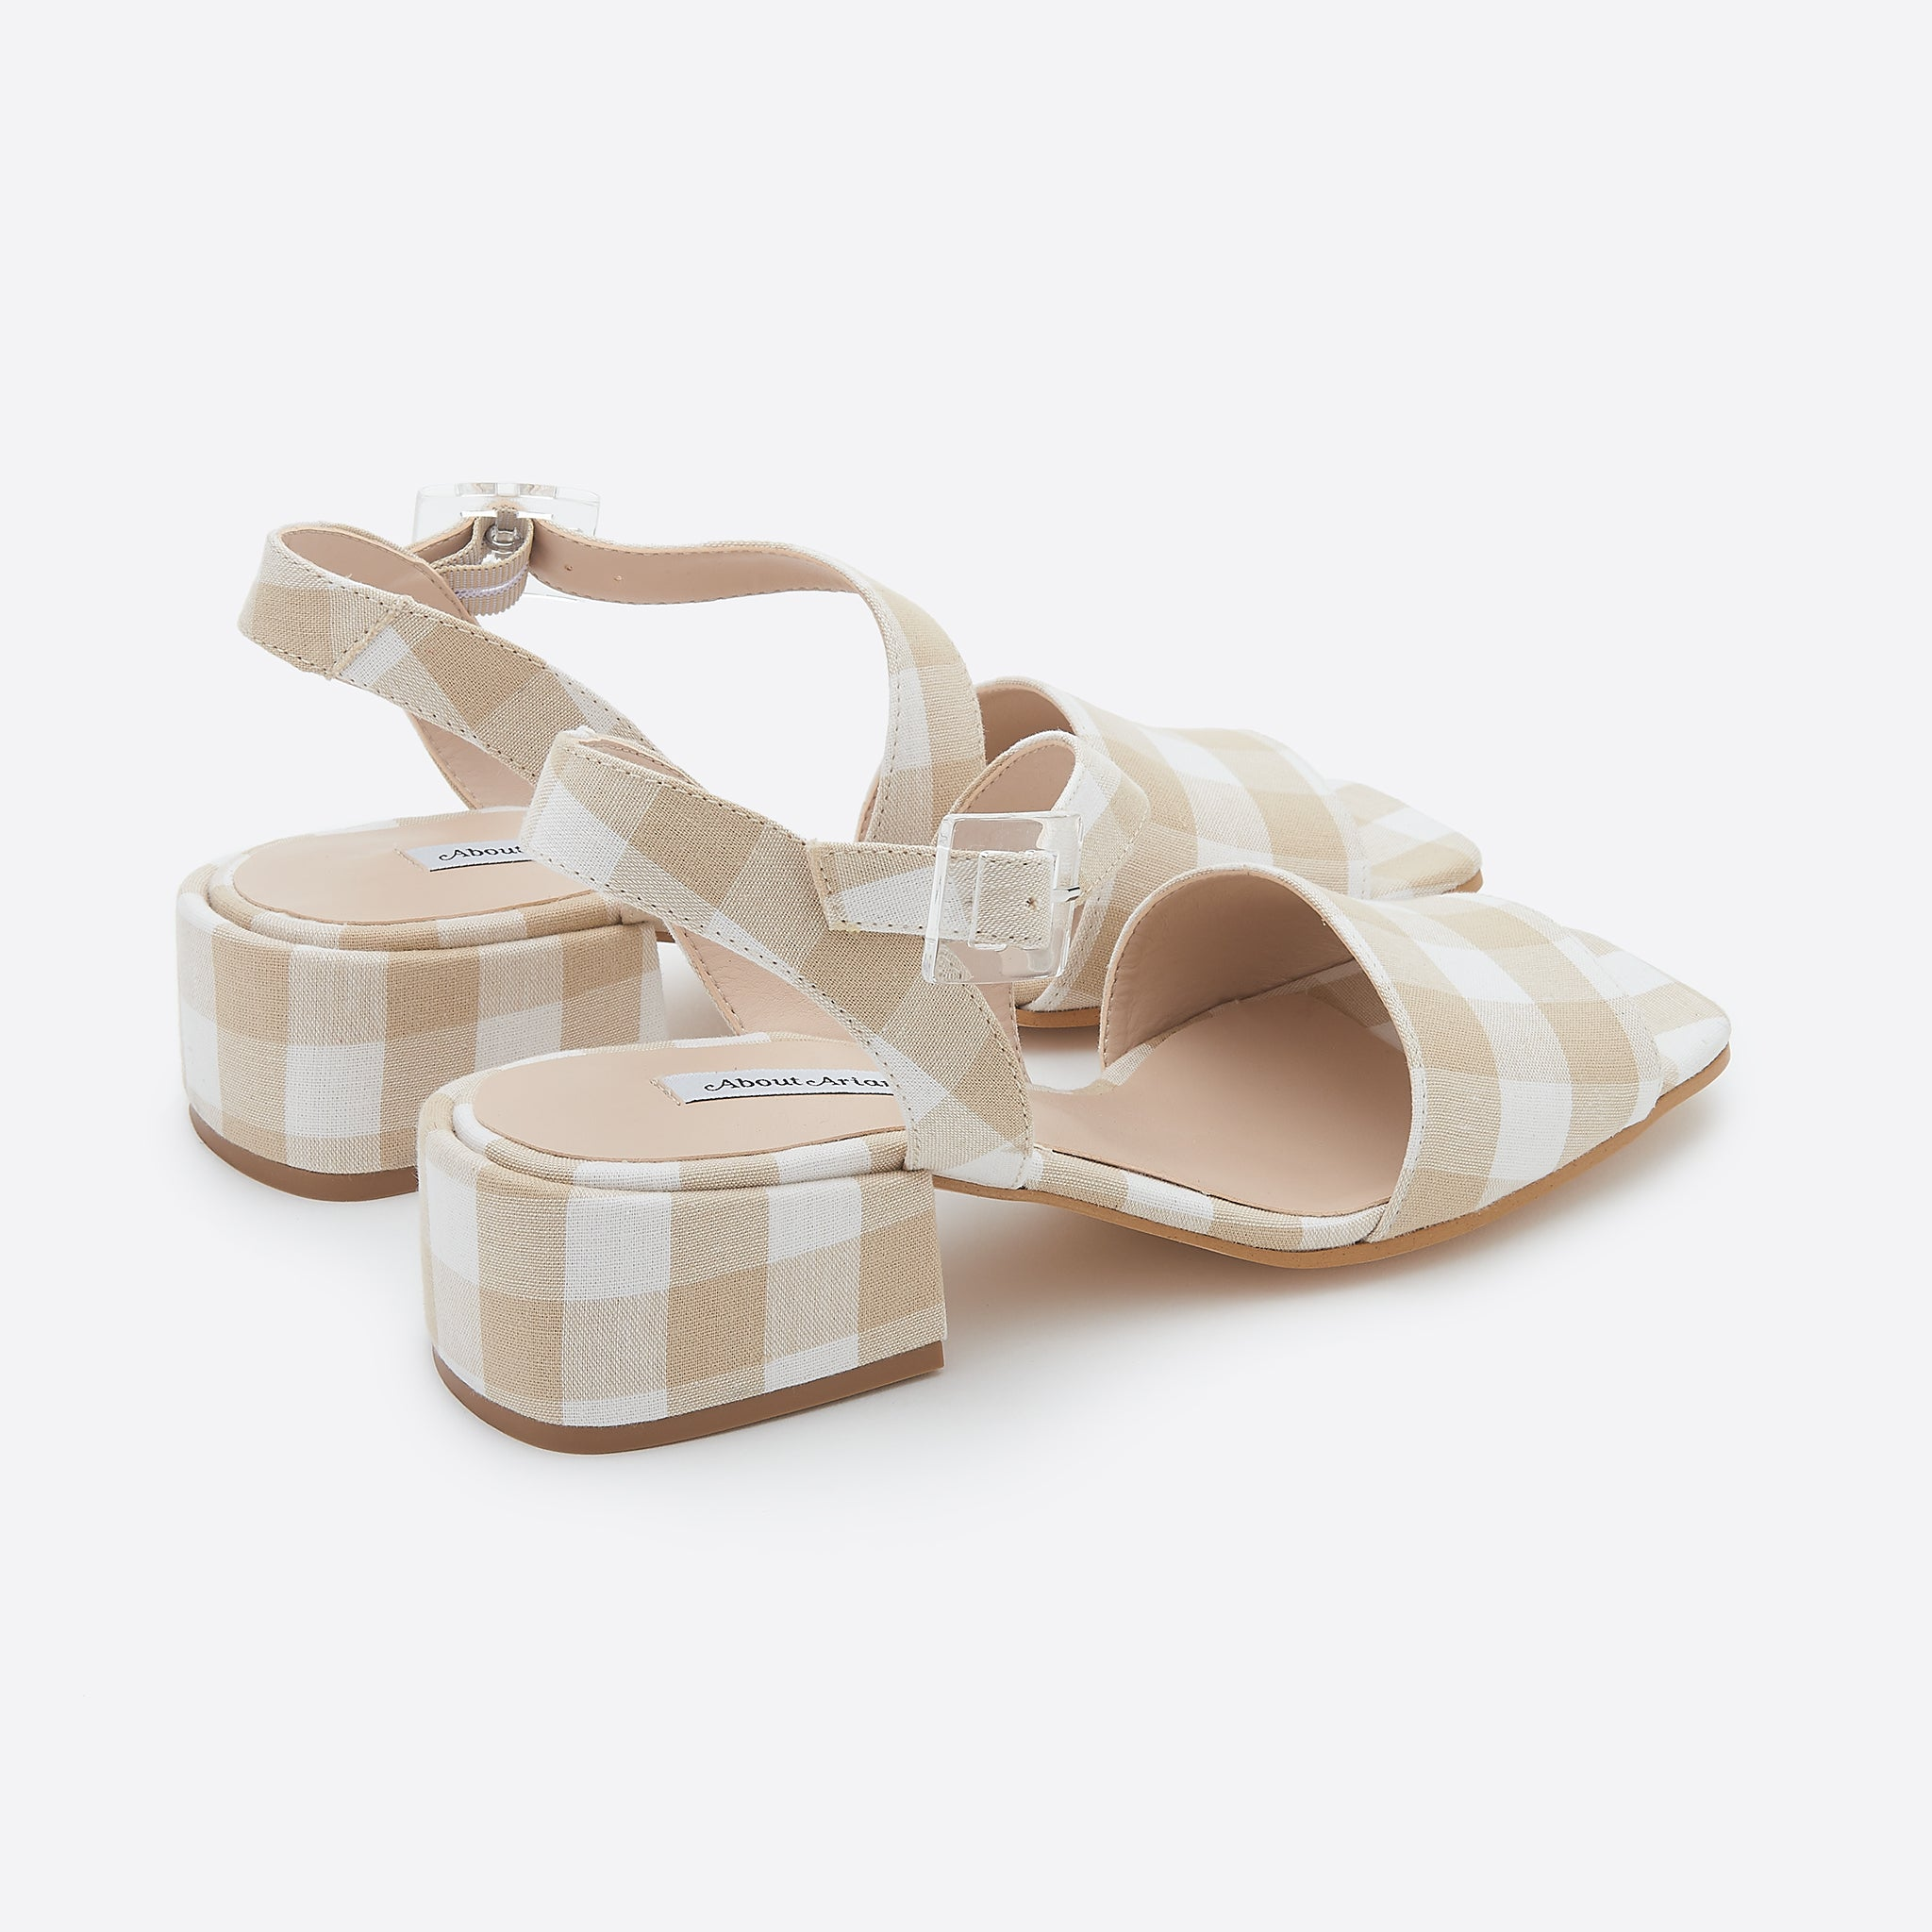 About Arianne Selva Clear Sandals in Provence